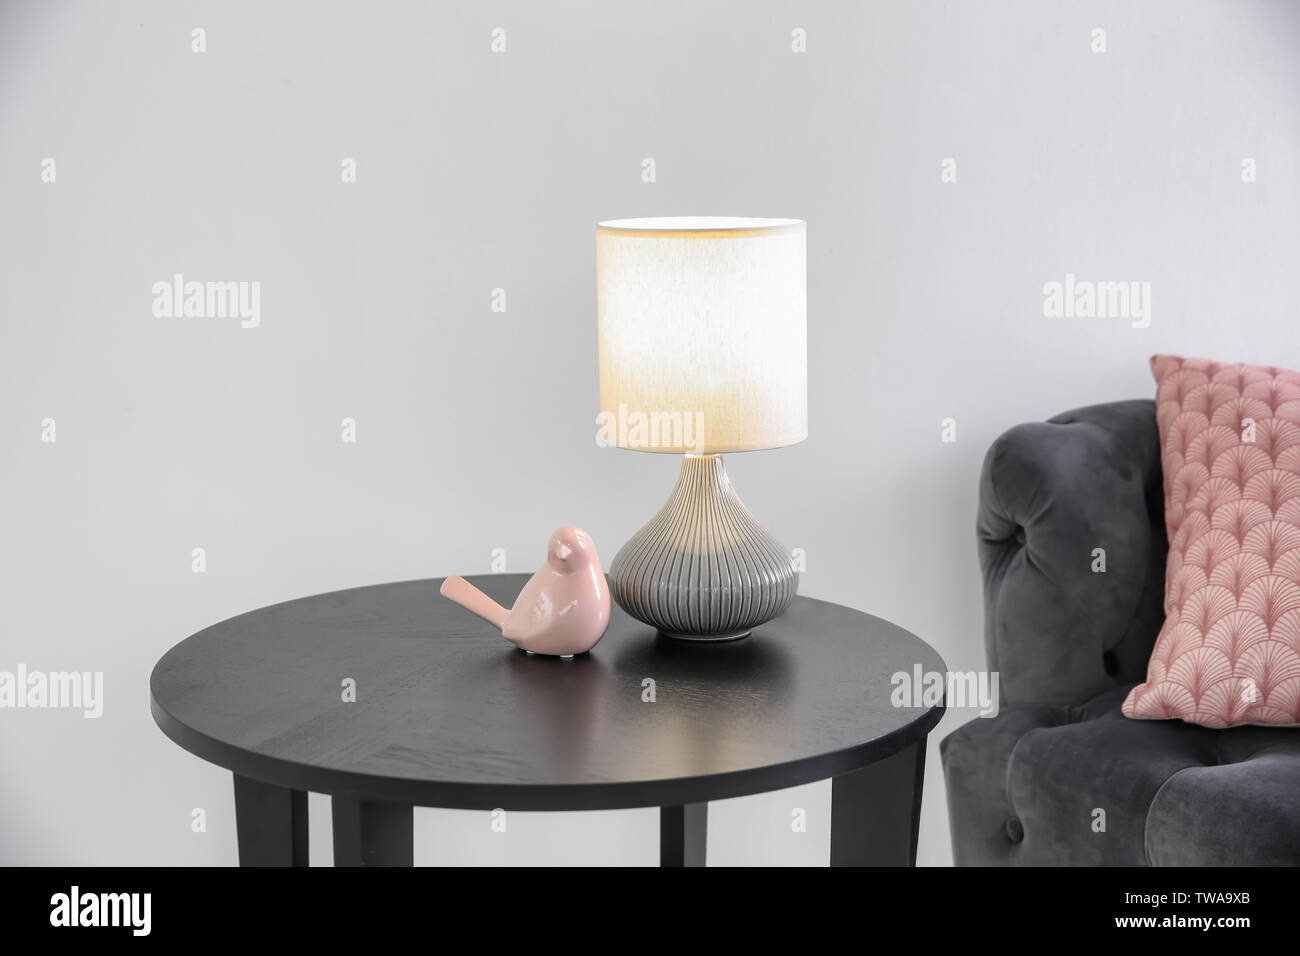 Side Table With Stylish Lamp Near White Wall Stock Photo